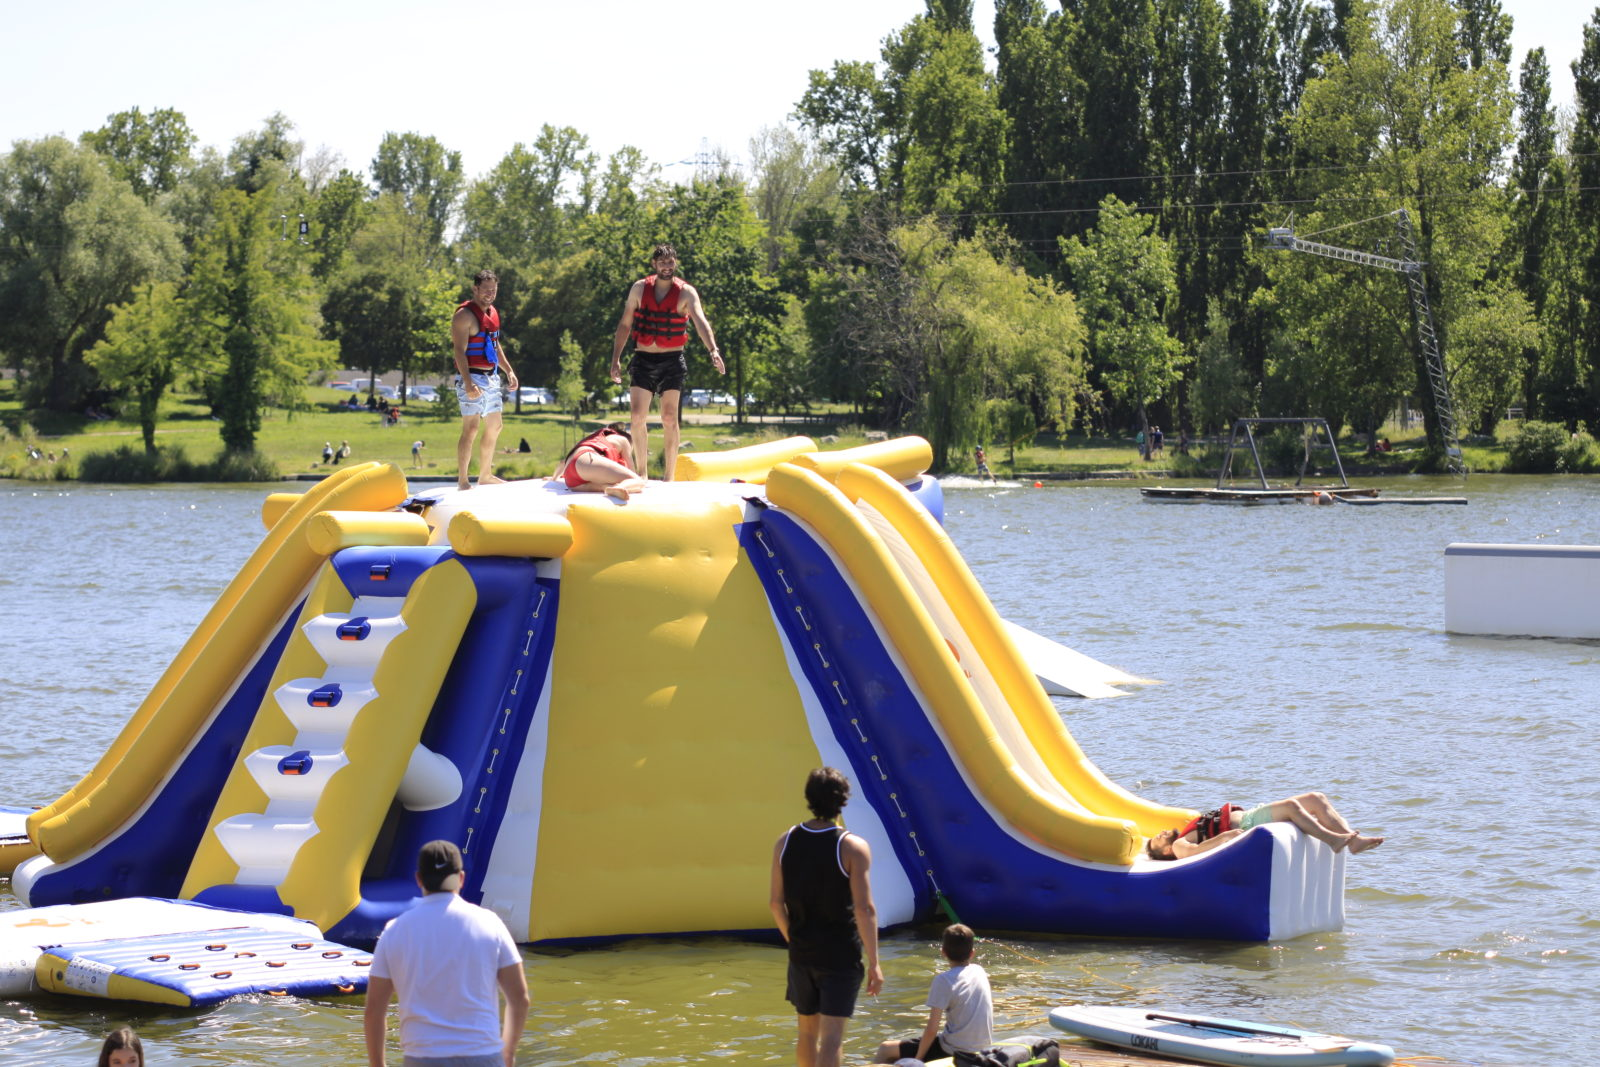 Bouncia -Inflatable Water Park Equipment For Wake Park-bouncia Inflatables-24